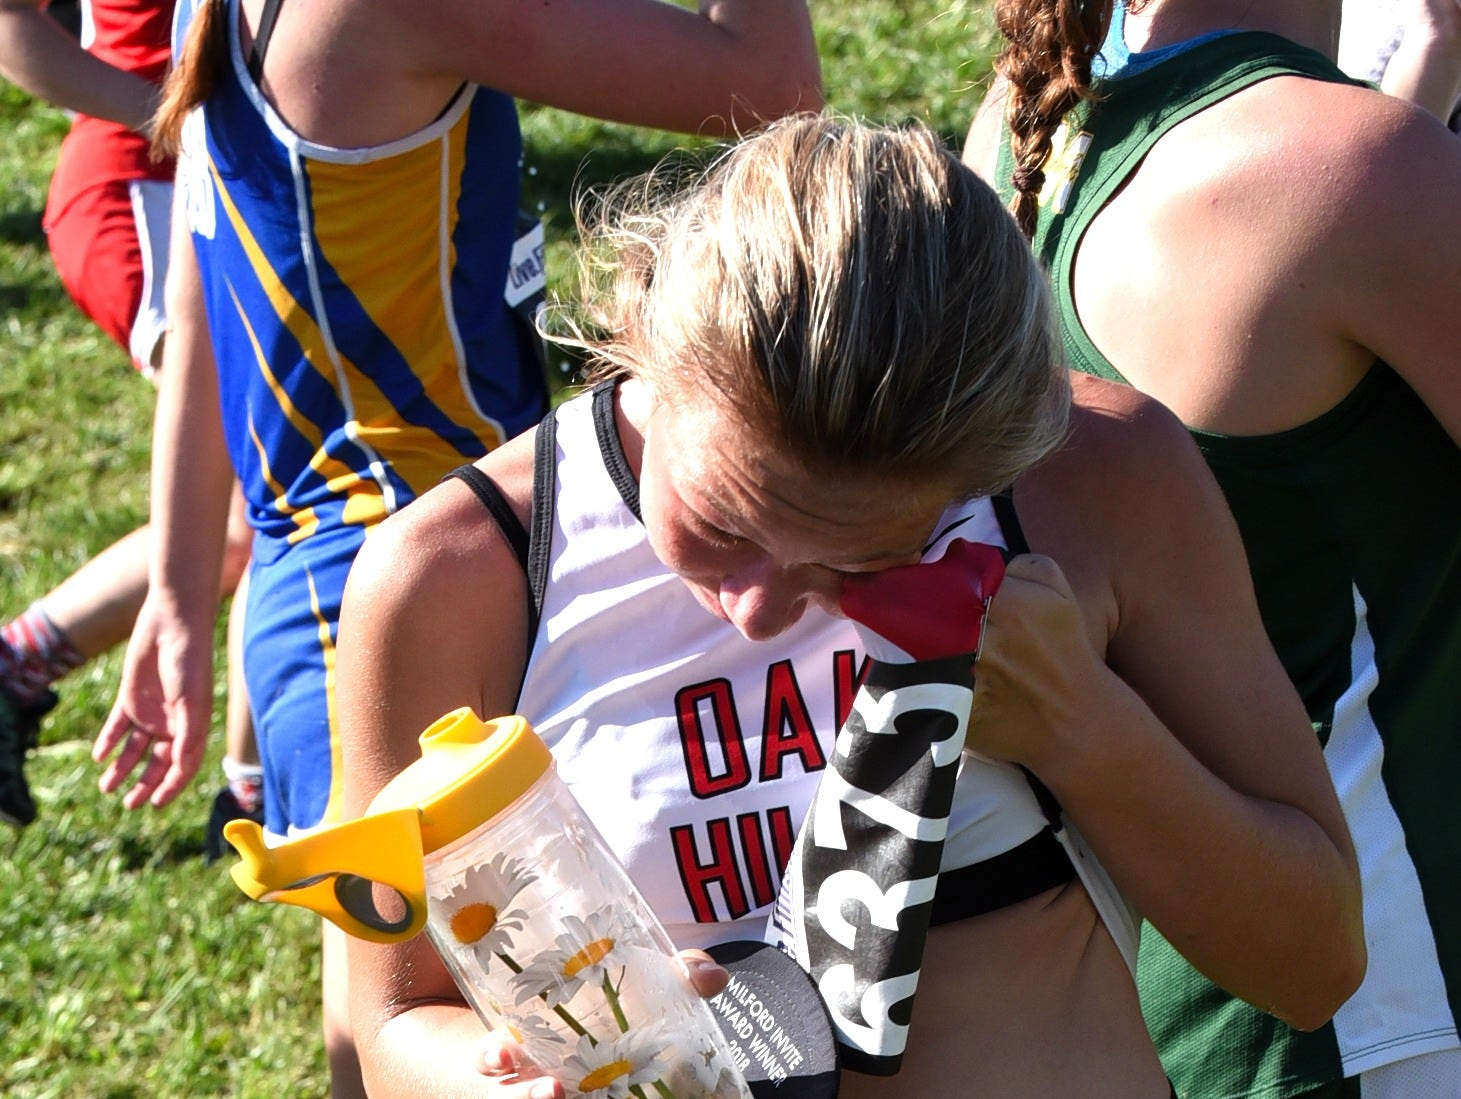 Emma Lucas wipes the sweat off of her brow after finishing strong in the Varsity girls 5K race at the 2018 Milford Cross Country Invitational, Sept. 15, 2018.